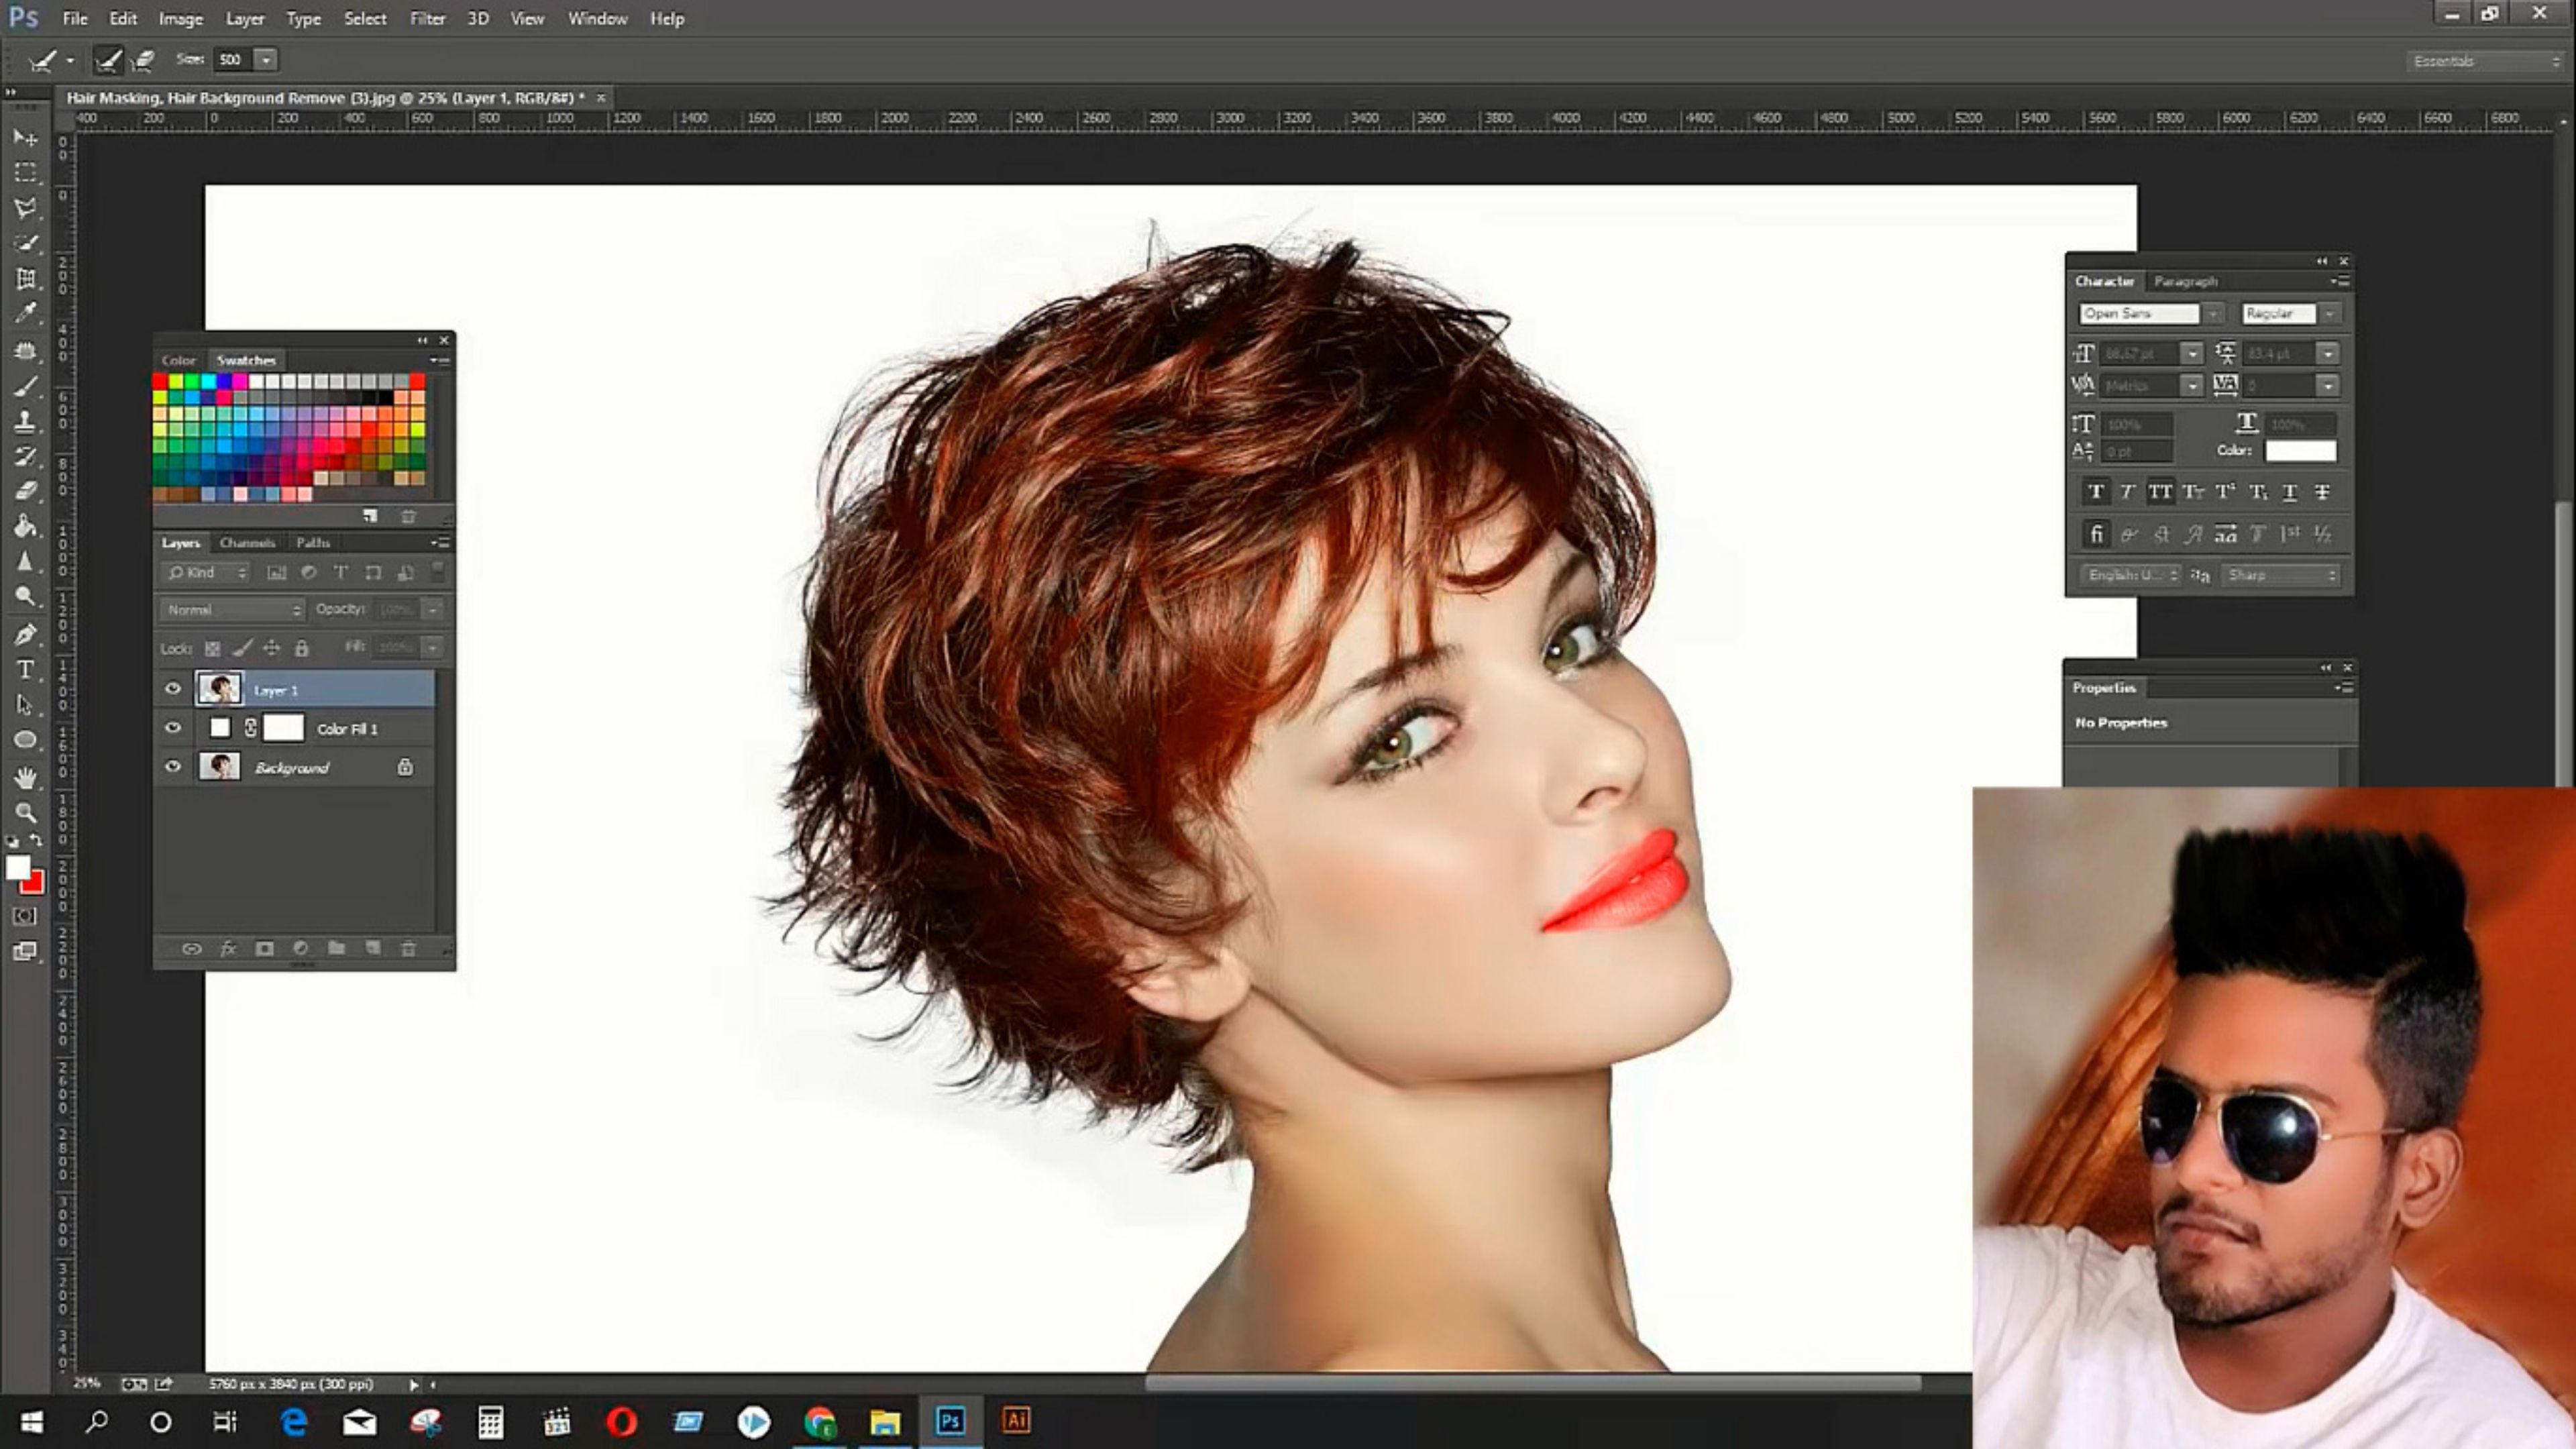 5 HQ images background removal superfast with unlimited revision